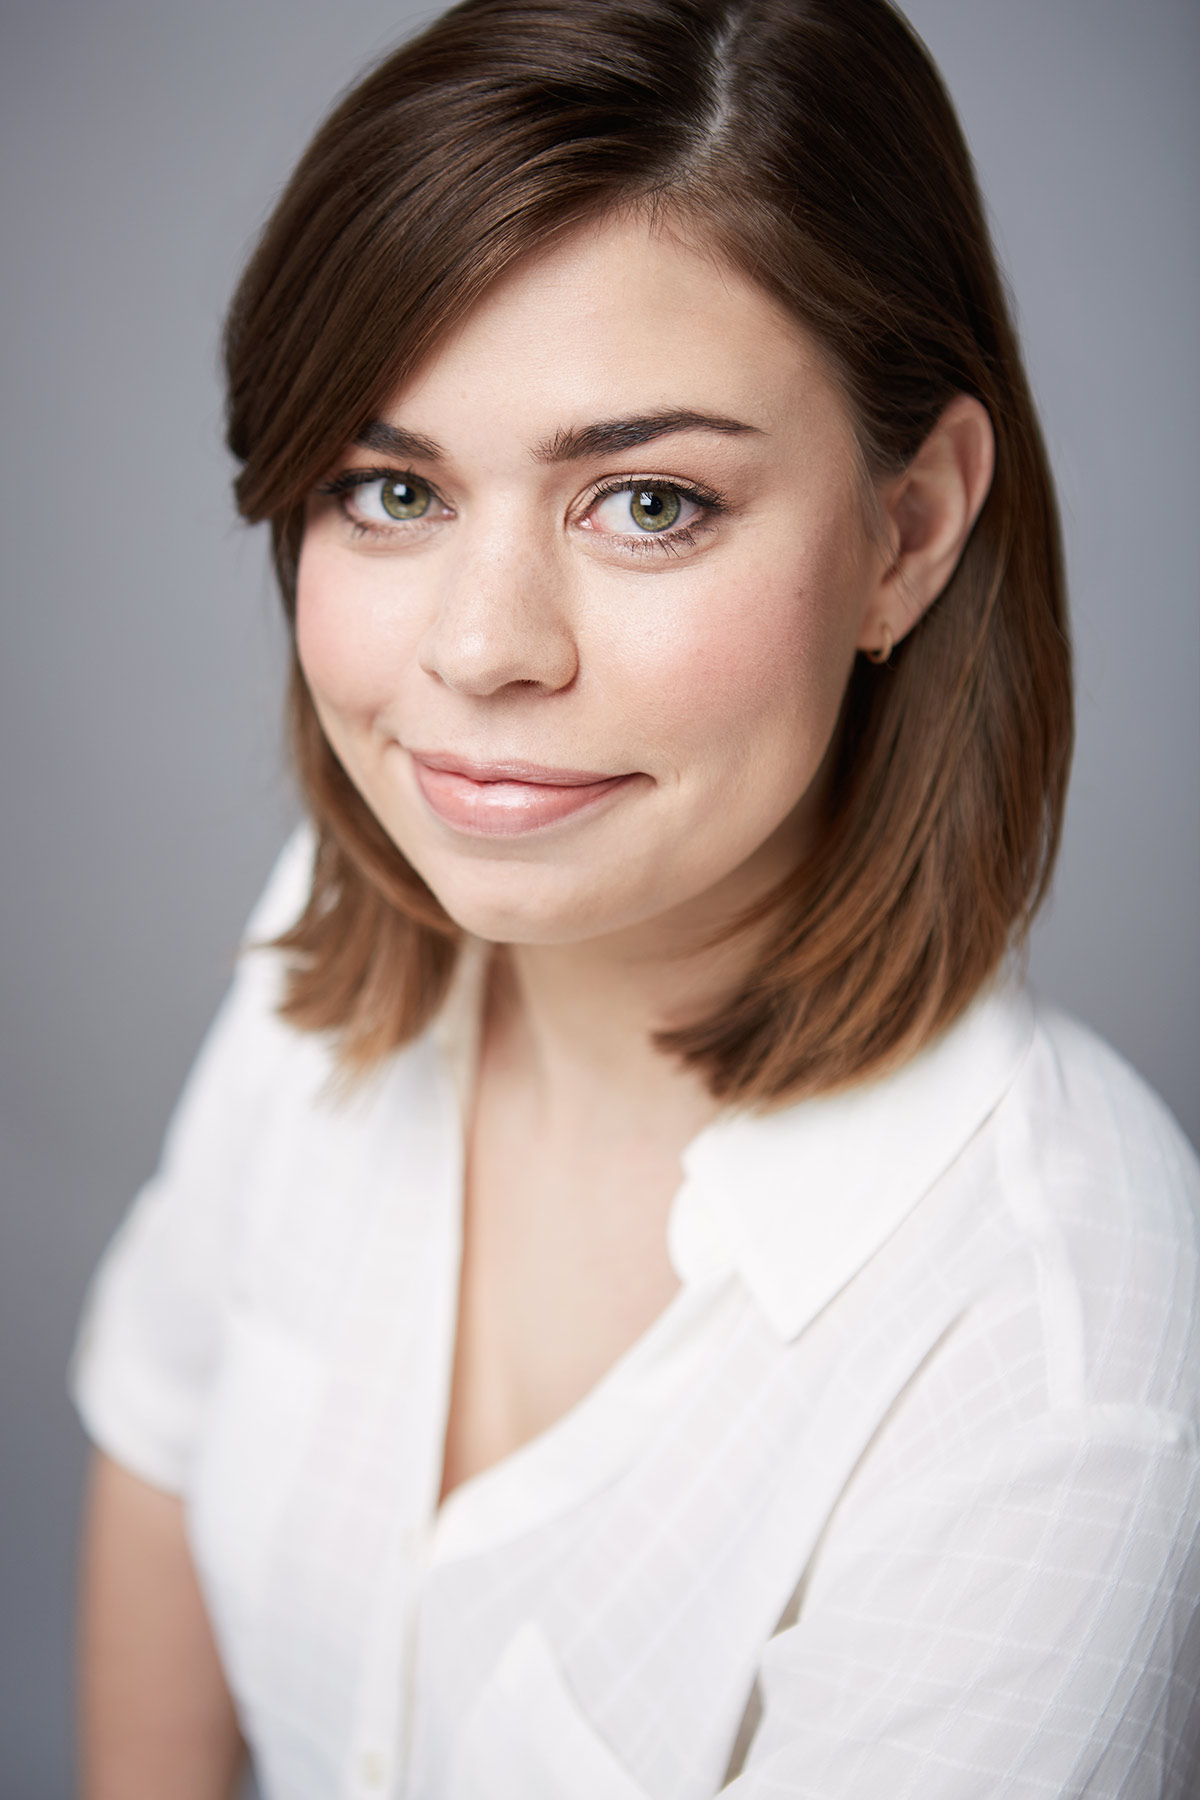 Laura_Actors_Headshot_Photographer_Chicago_Best_Affordable_Actress_Photography_Head_Shot_Tiny_Space_Studio